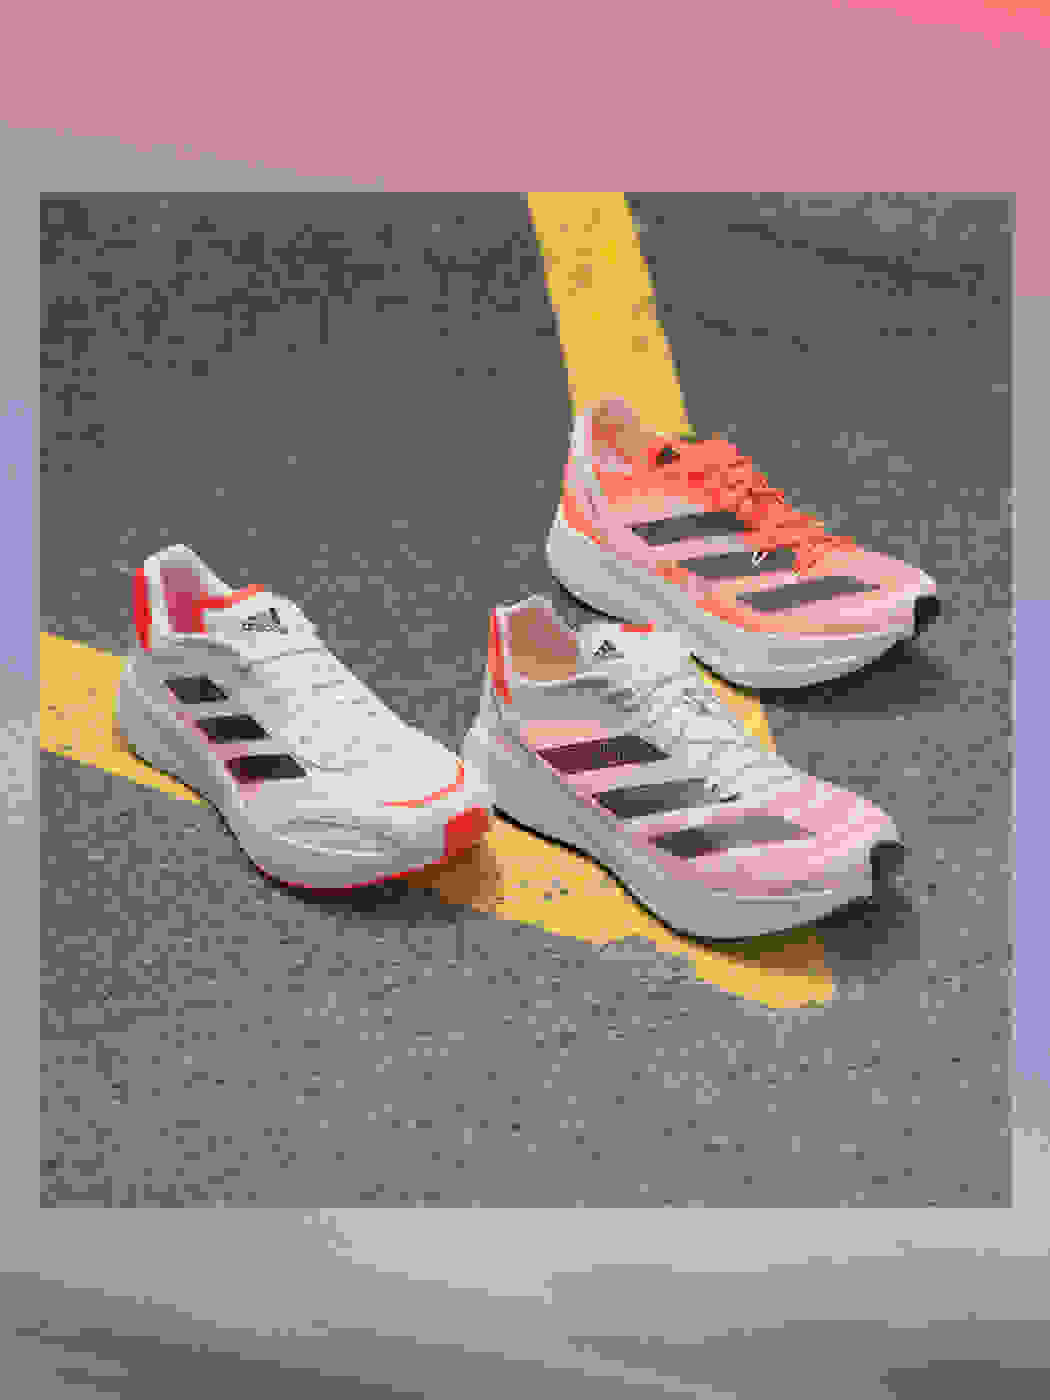 Adizero running shoes on the street with text